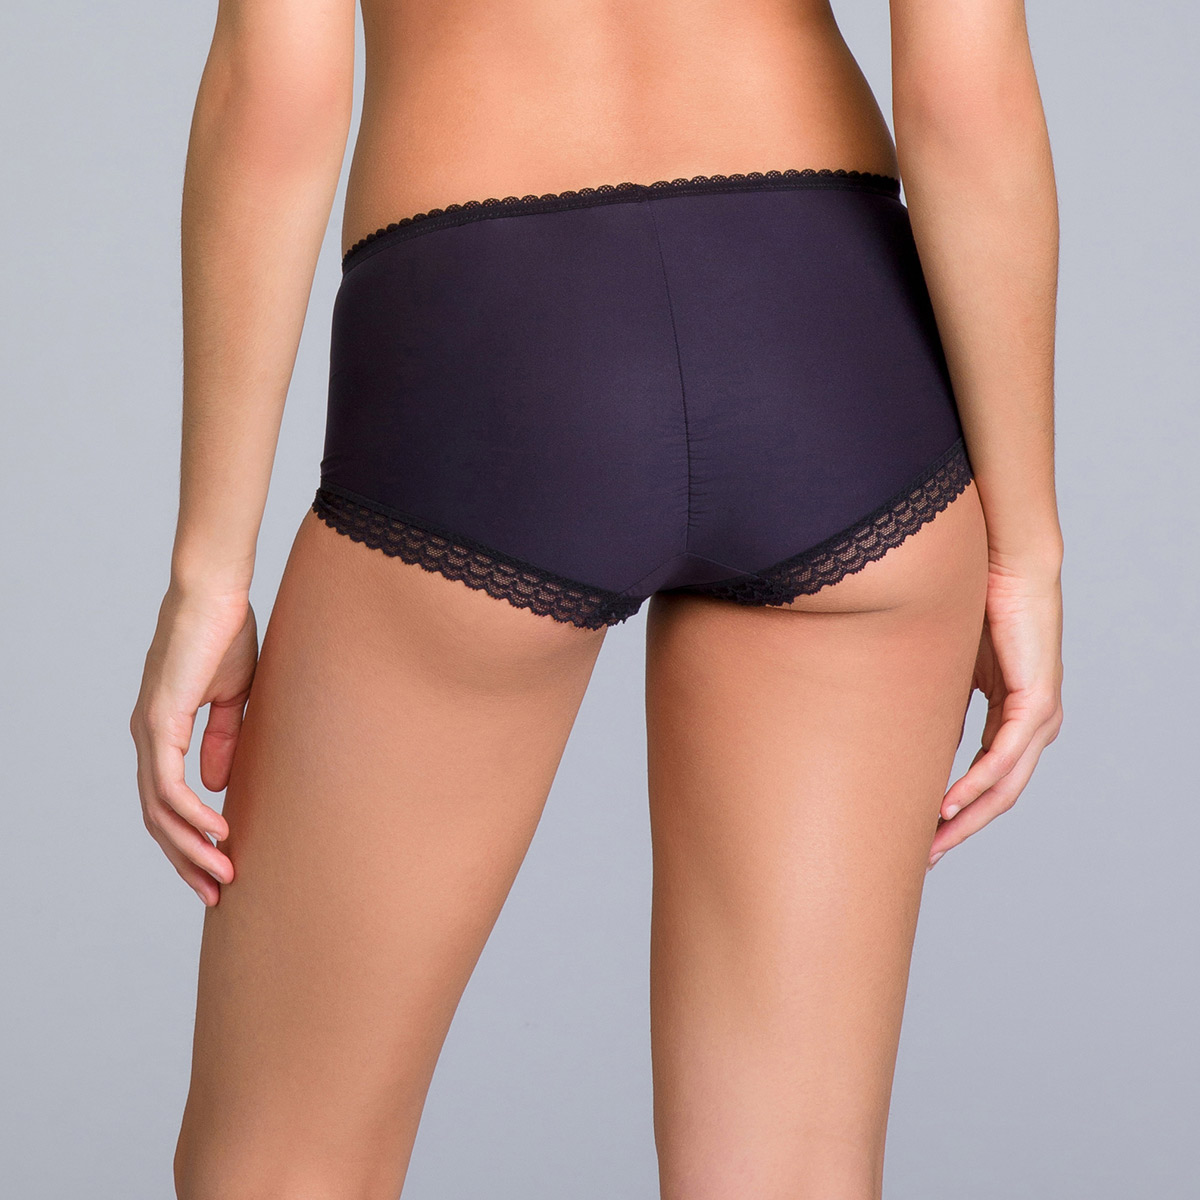 Shorty invisible noir - Invisible Elegance, , PLAYTEX